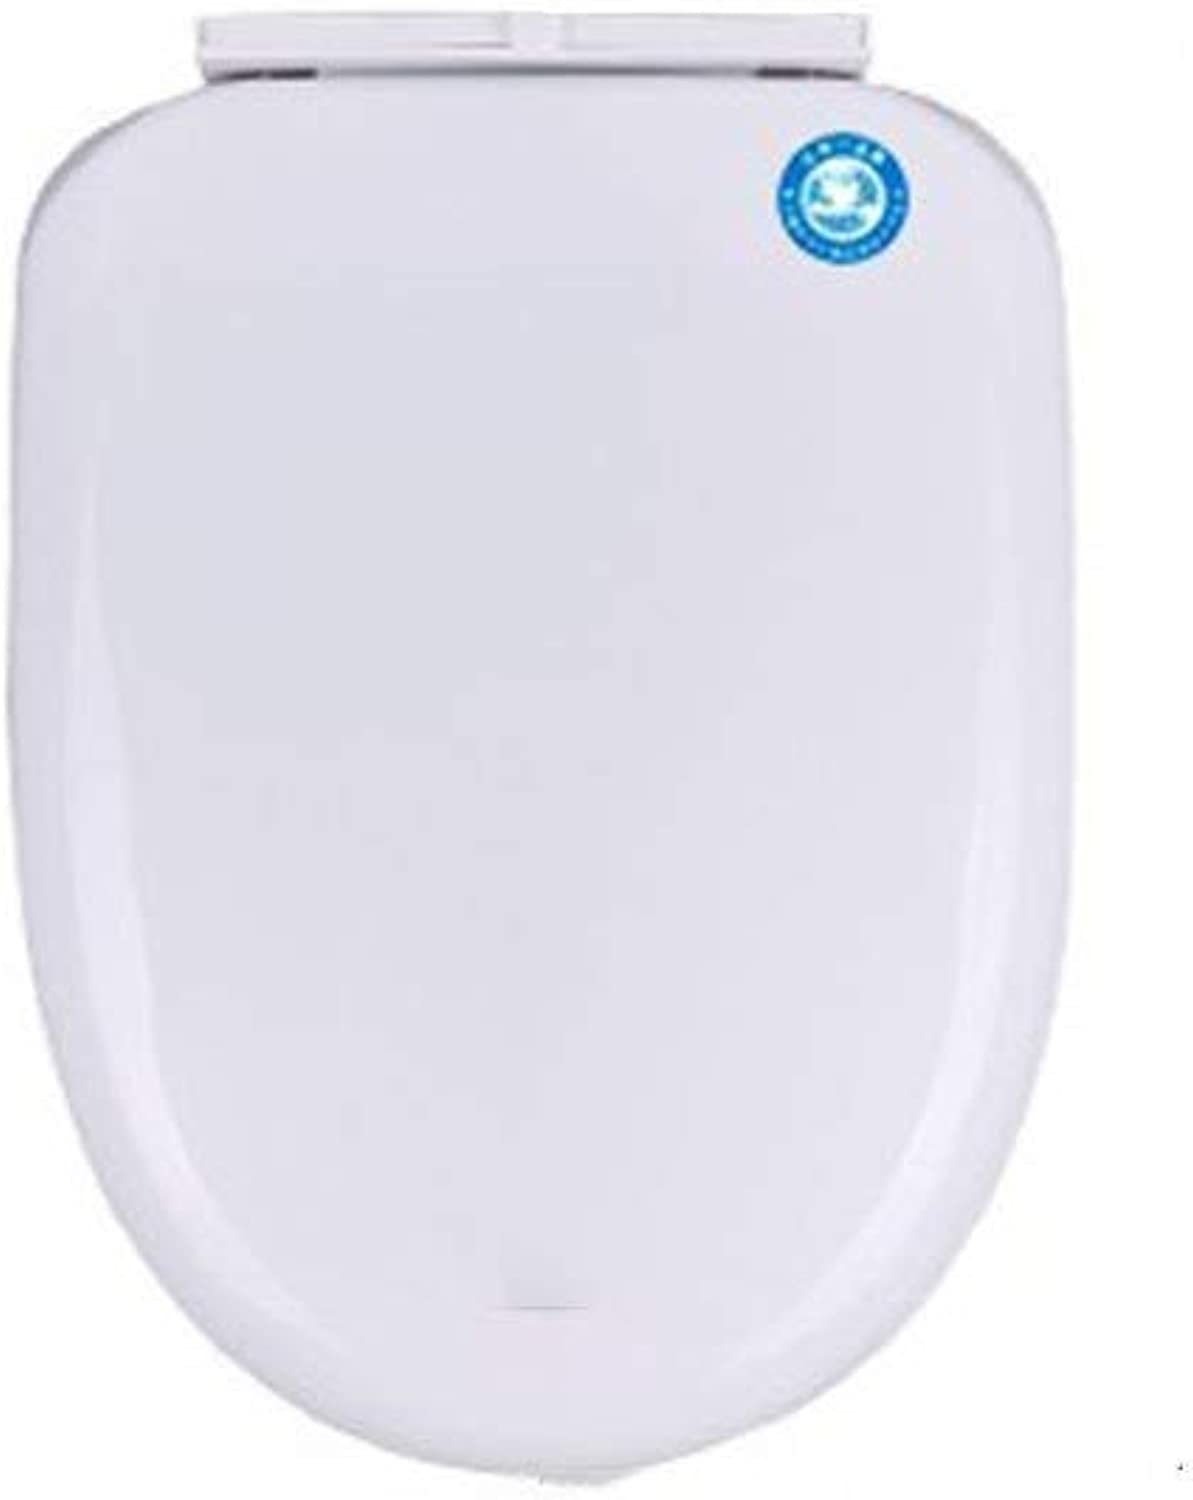 WYPJ Toilet Seat Toilet Seat Universal Toilet Seat Thickened Slow Down Mute Toilet Lid For O U V Shape Toilet Anti-Bacterial Toilet Seat (Size   4044cm3637cm)